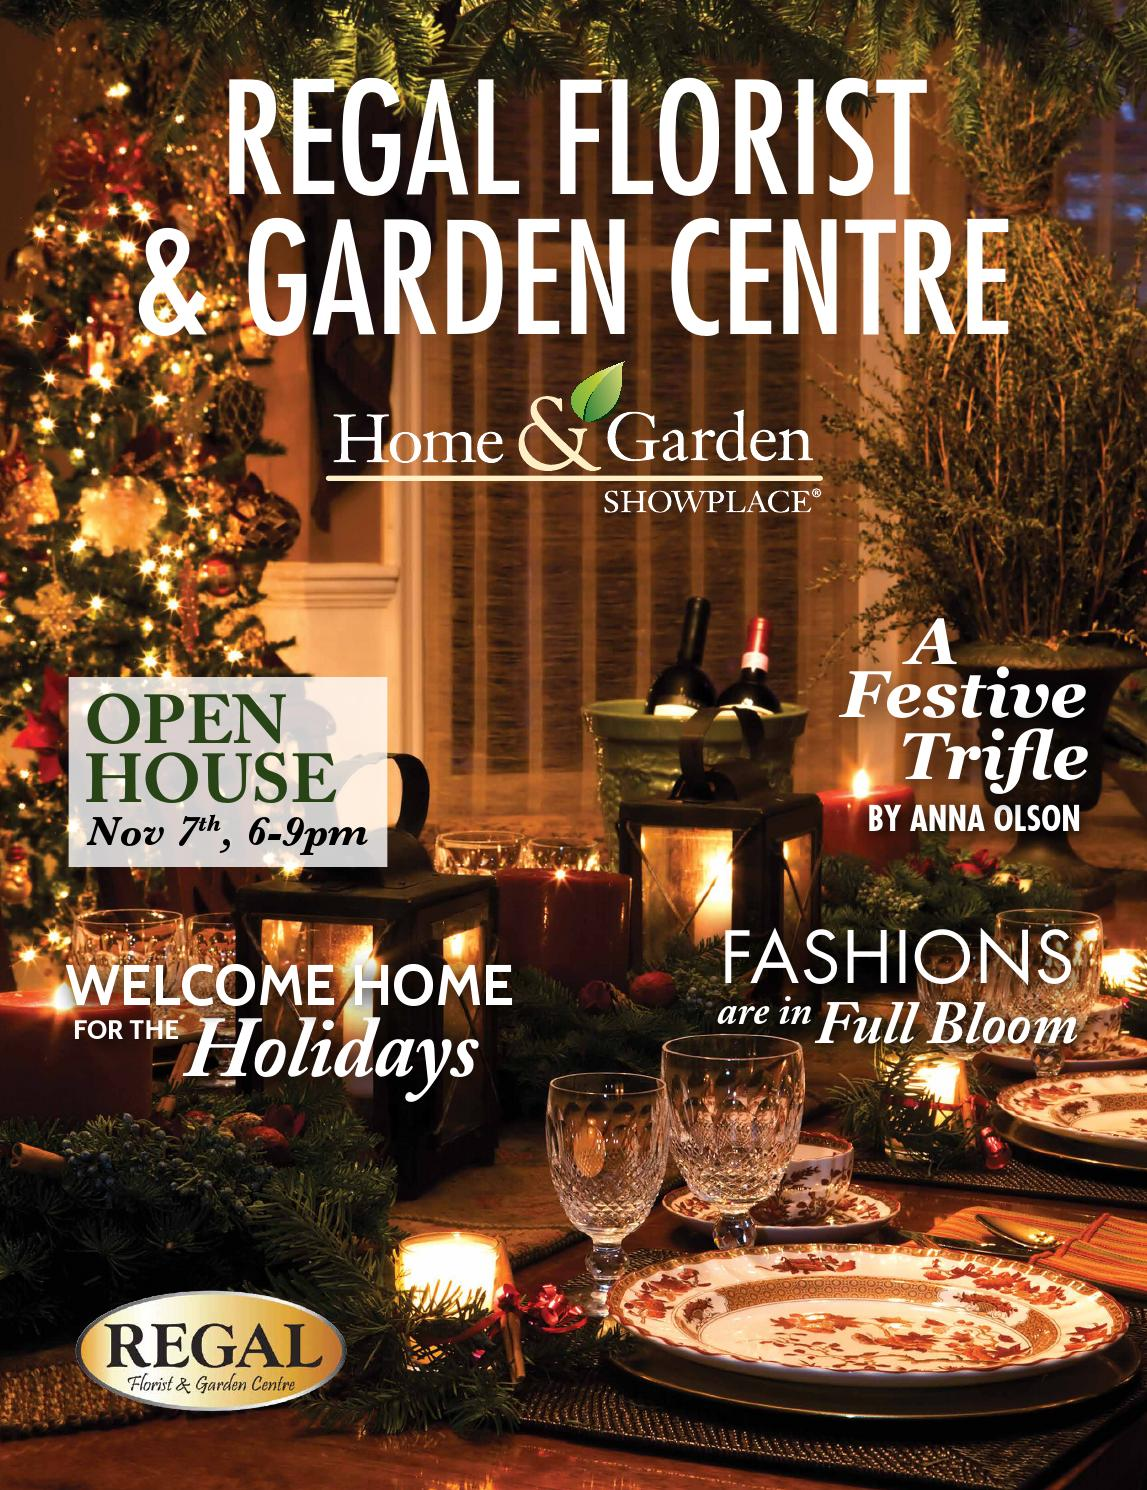 Regal Florist & Garden Centre Holiday 2014 by Country Road Graphics ...